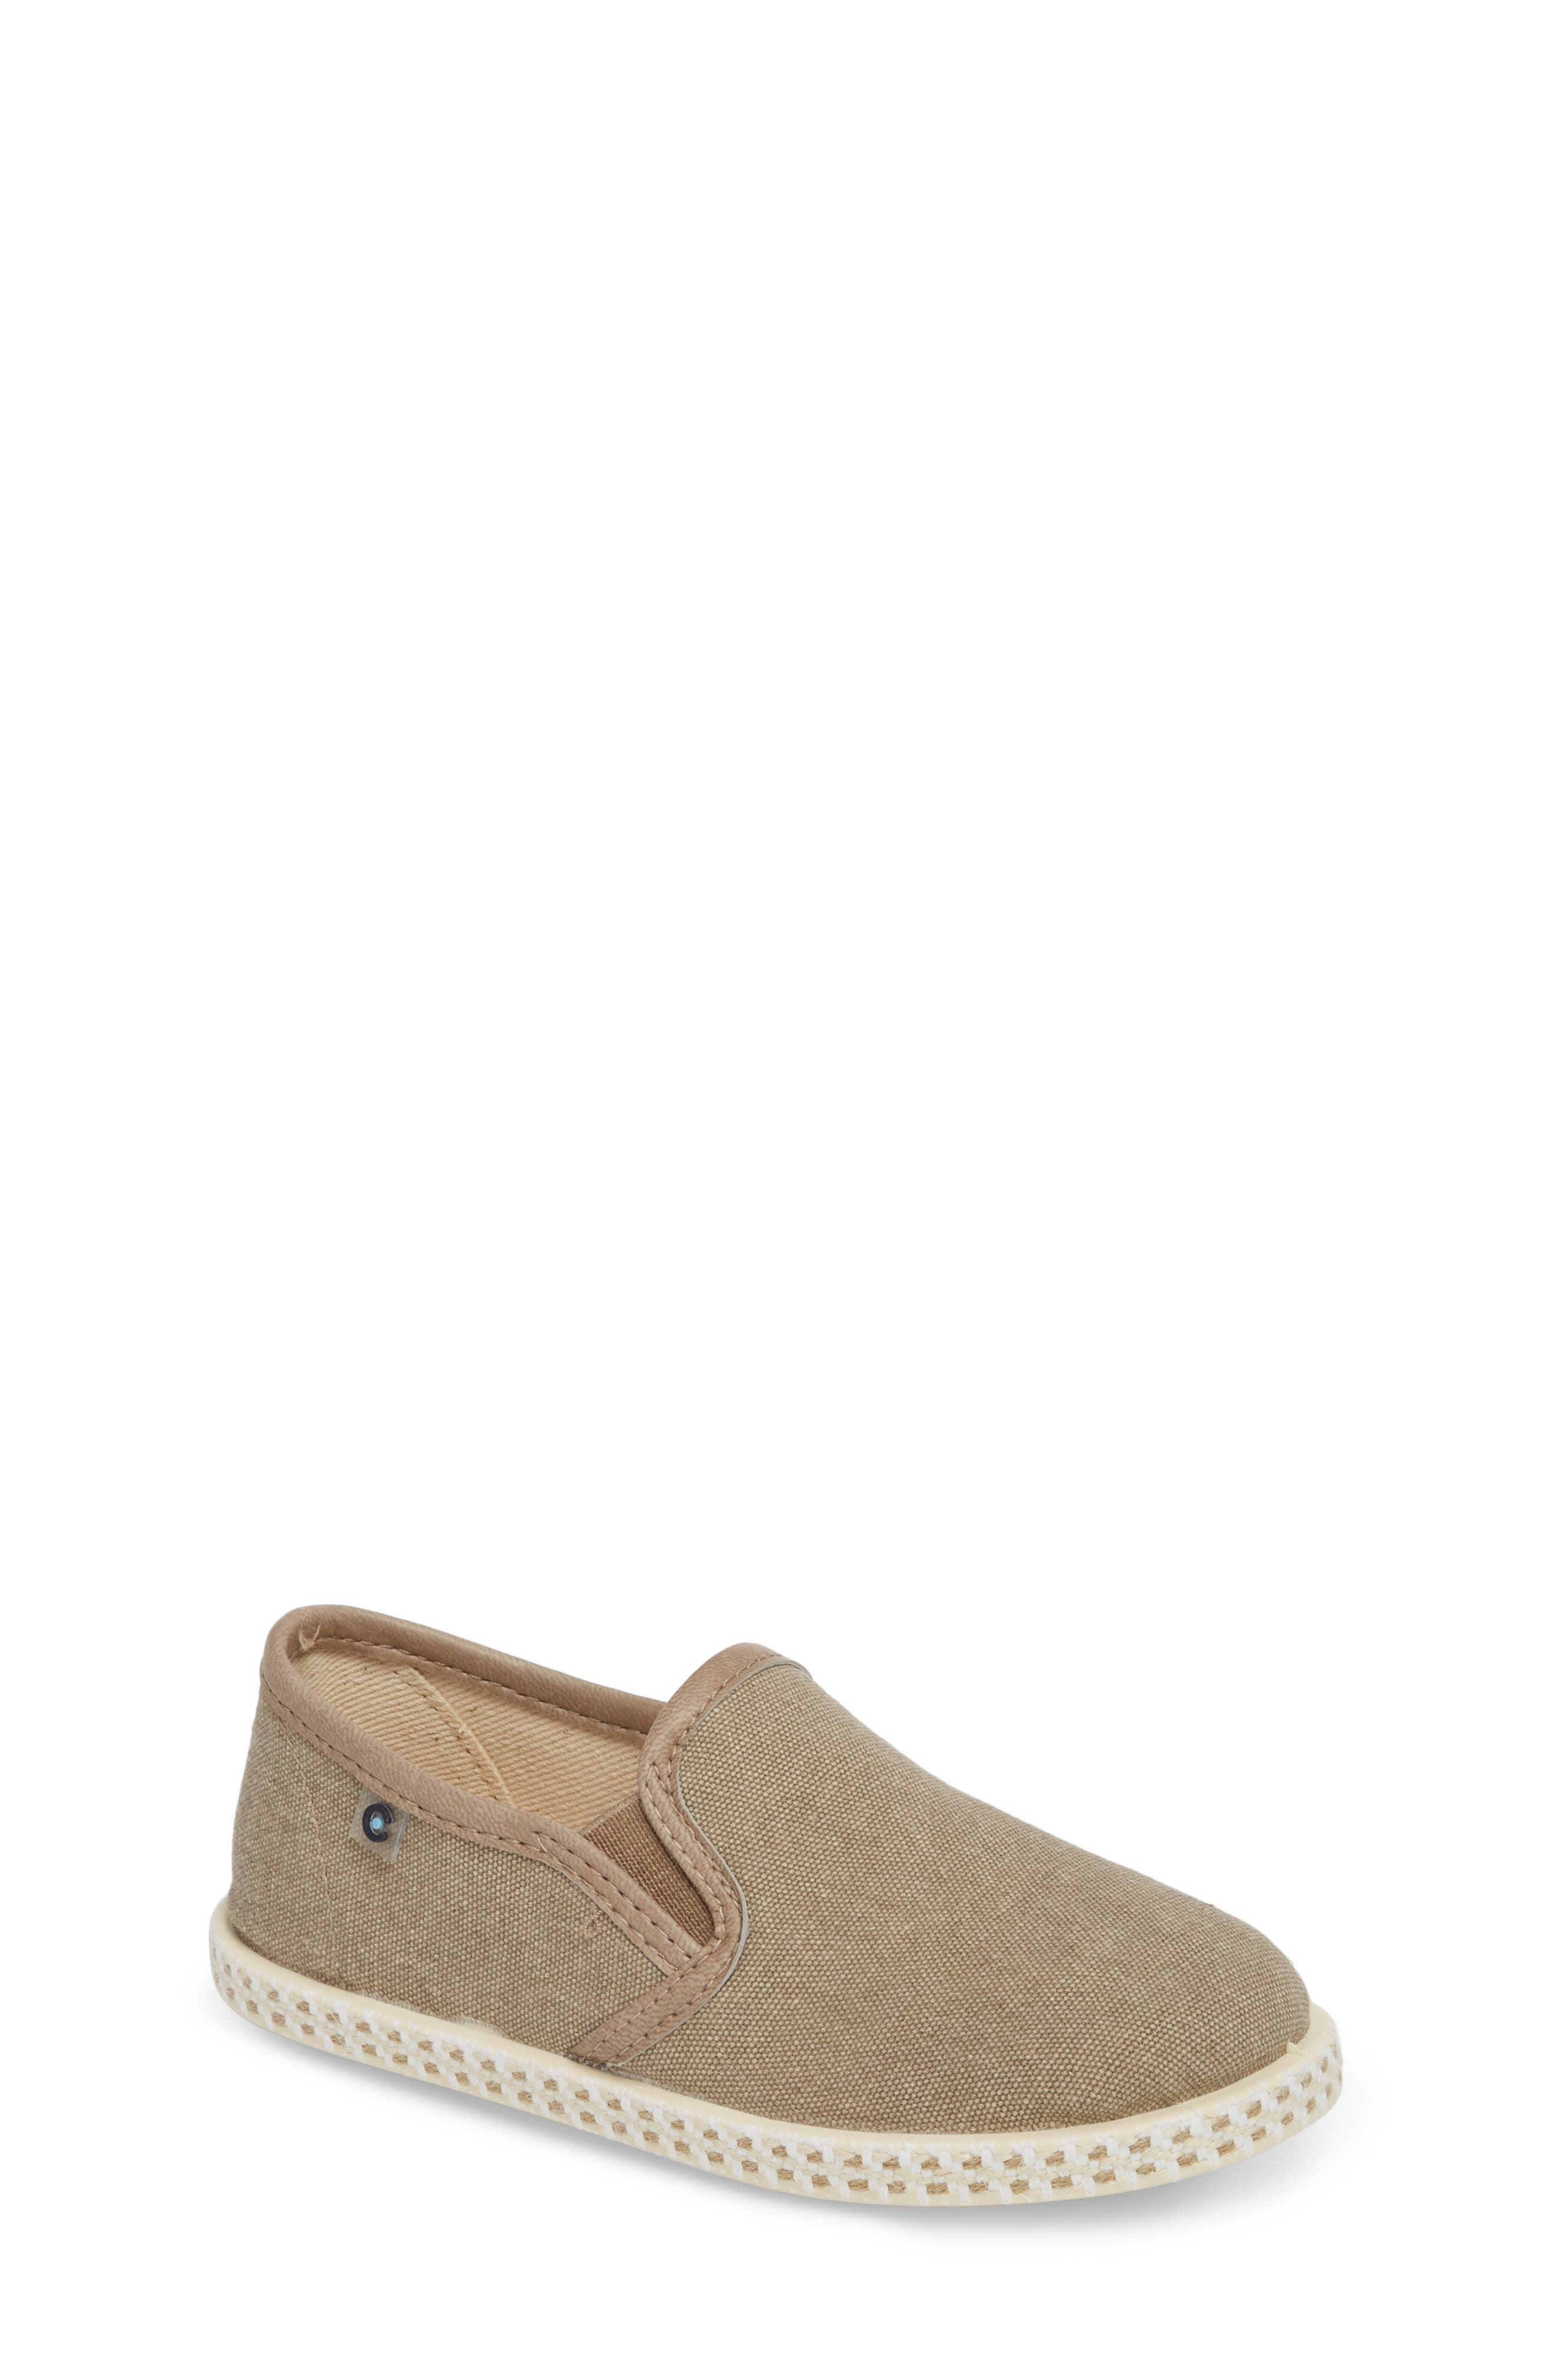 Lona Slip-On Sneaker,                             Main thumbnail 1, color,                             TAUPE